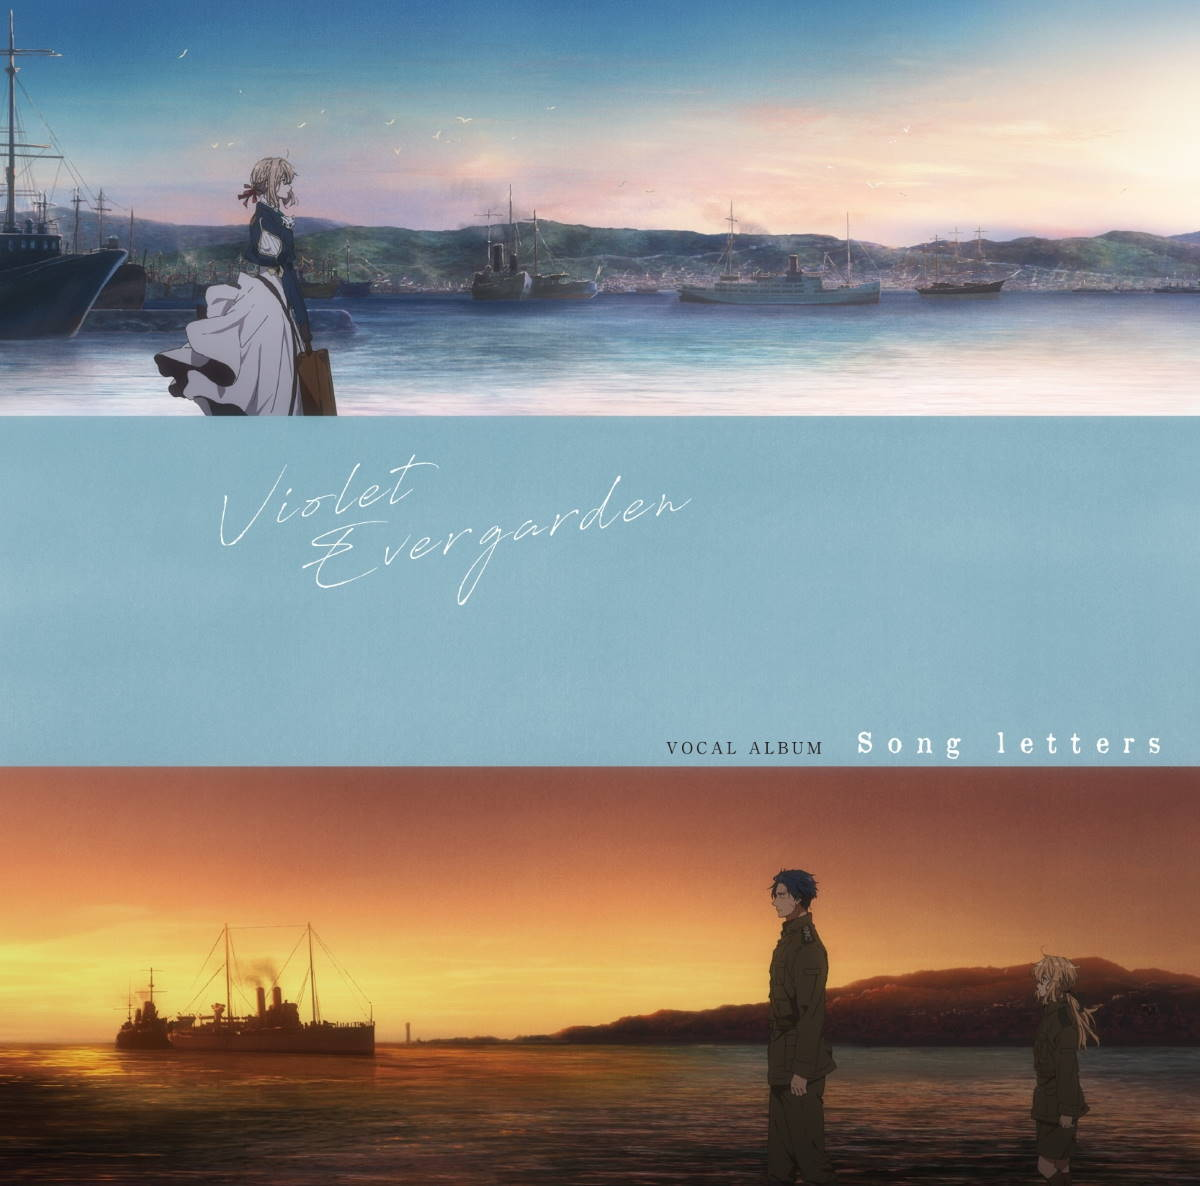 『TRUE - 未来のひとへ』収録の『VIOLET EVERGARDEN VOCAL ALBUM Song letters』ジャケット